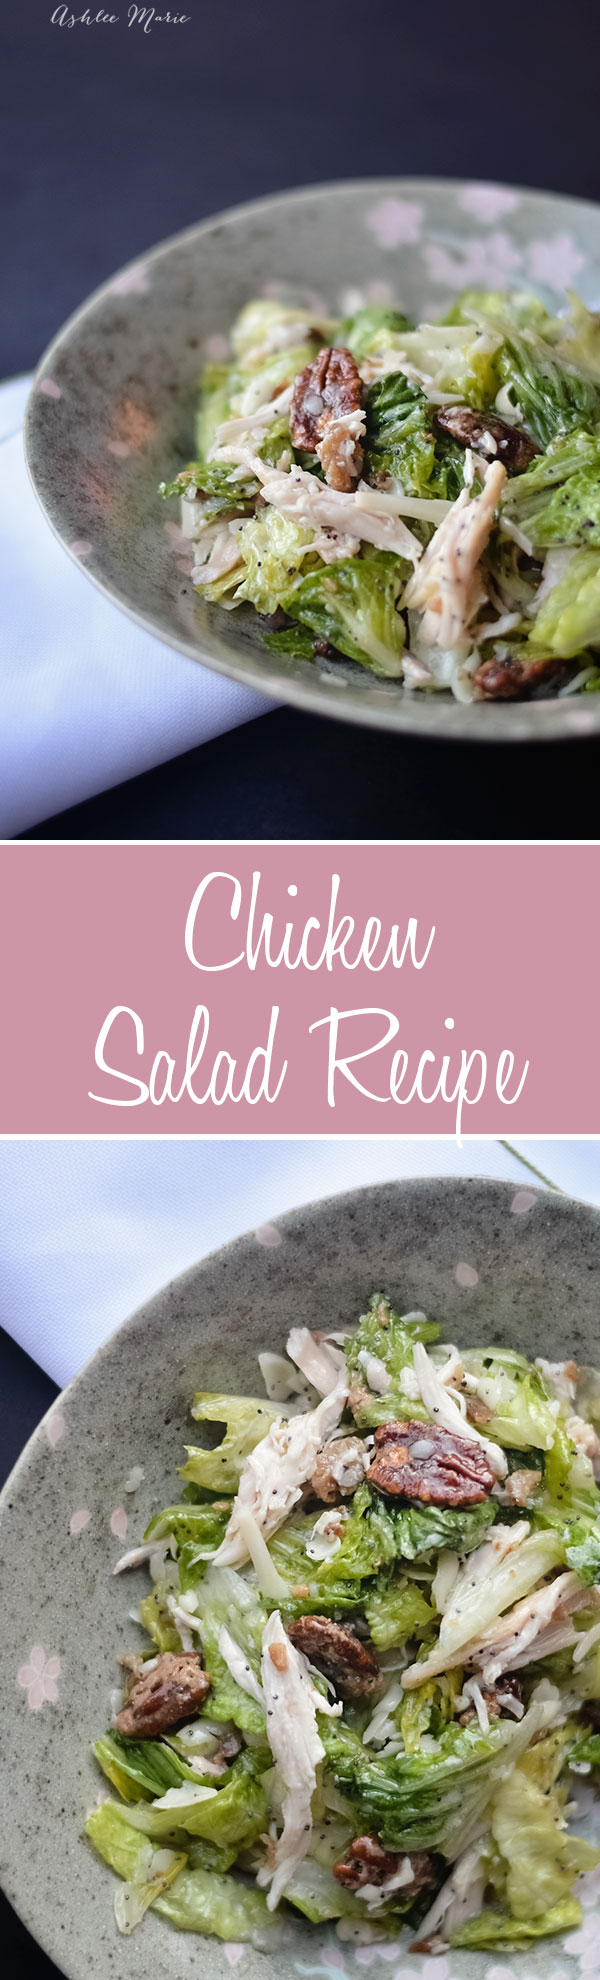 this rotisserie chicken salad is full of goodness, candied pecans, bacon, cheese and more.  Its easy to throw together and is great to serve a group